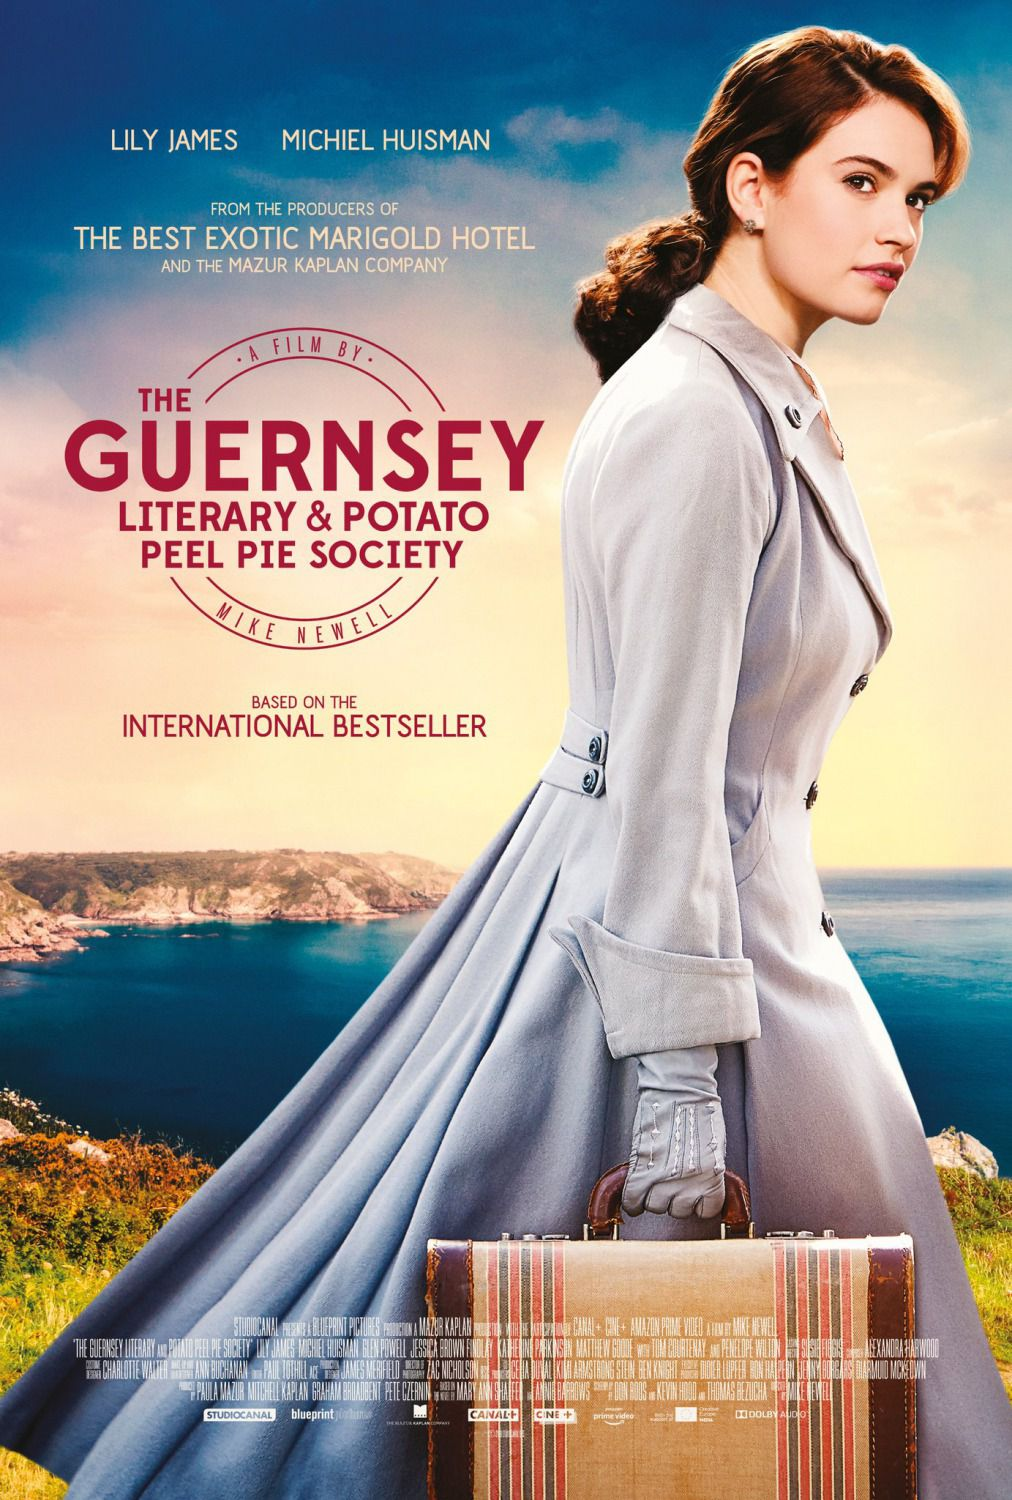 The Guernsey, Literary and Potato Peel Pie Society - Cast: Lily James, Michiel Huisman - film poster 2018